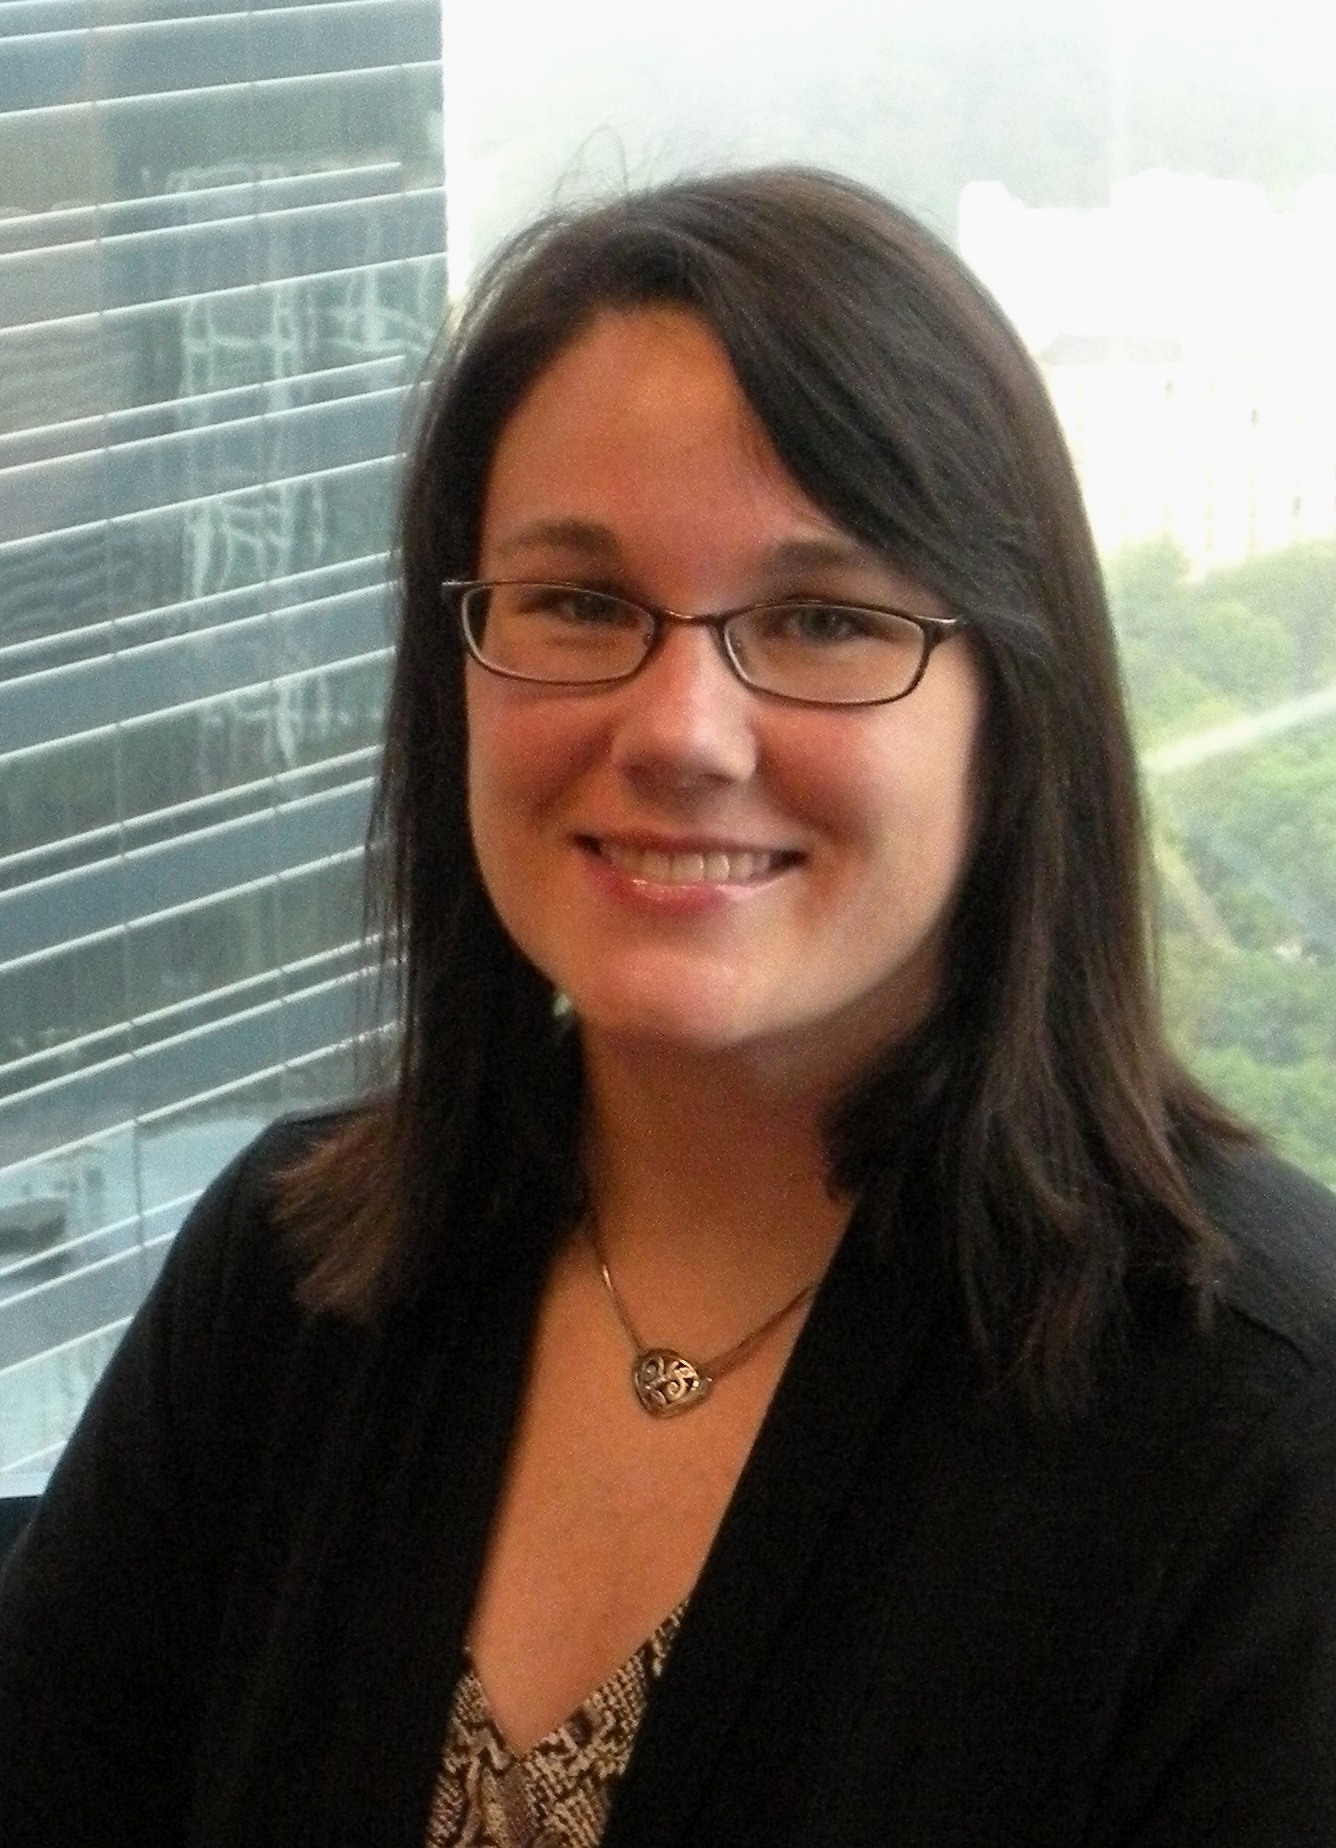 Beth Bissell joins UHY Advisors in Atlanta as Marketing Manager.